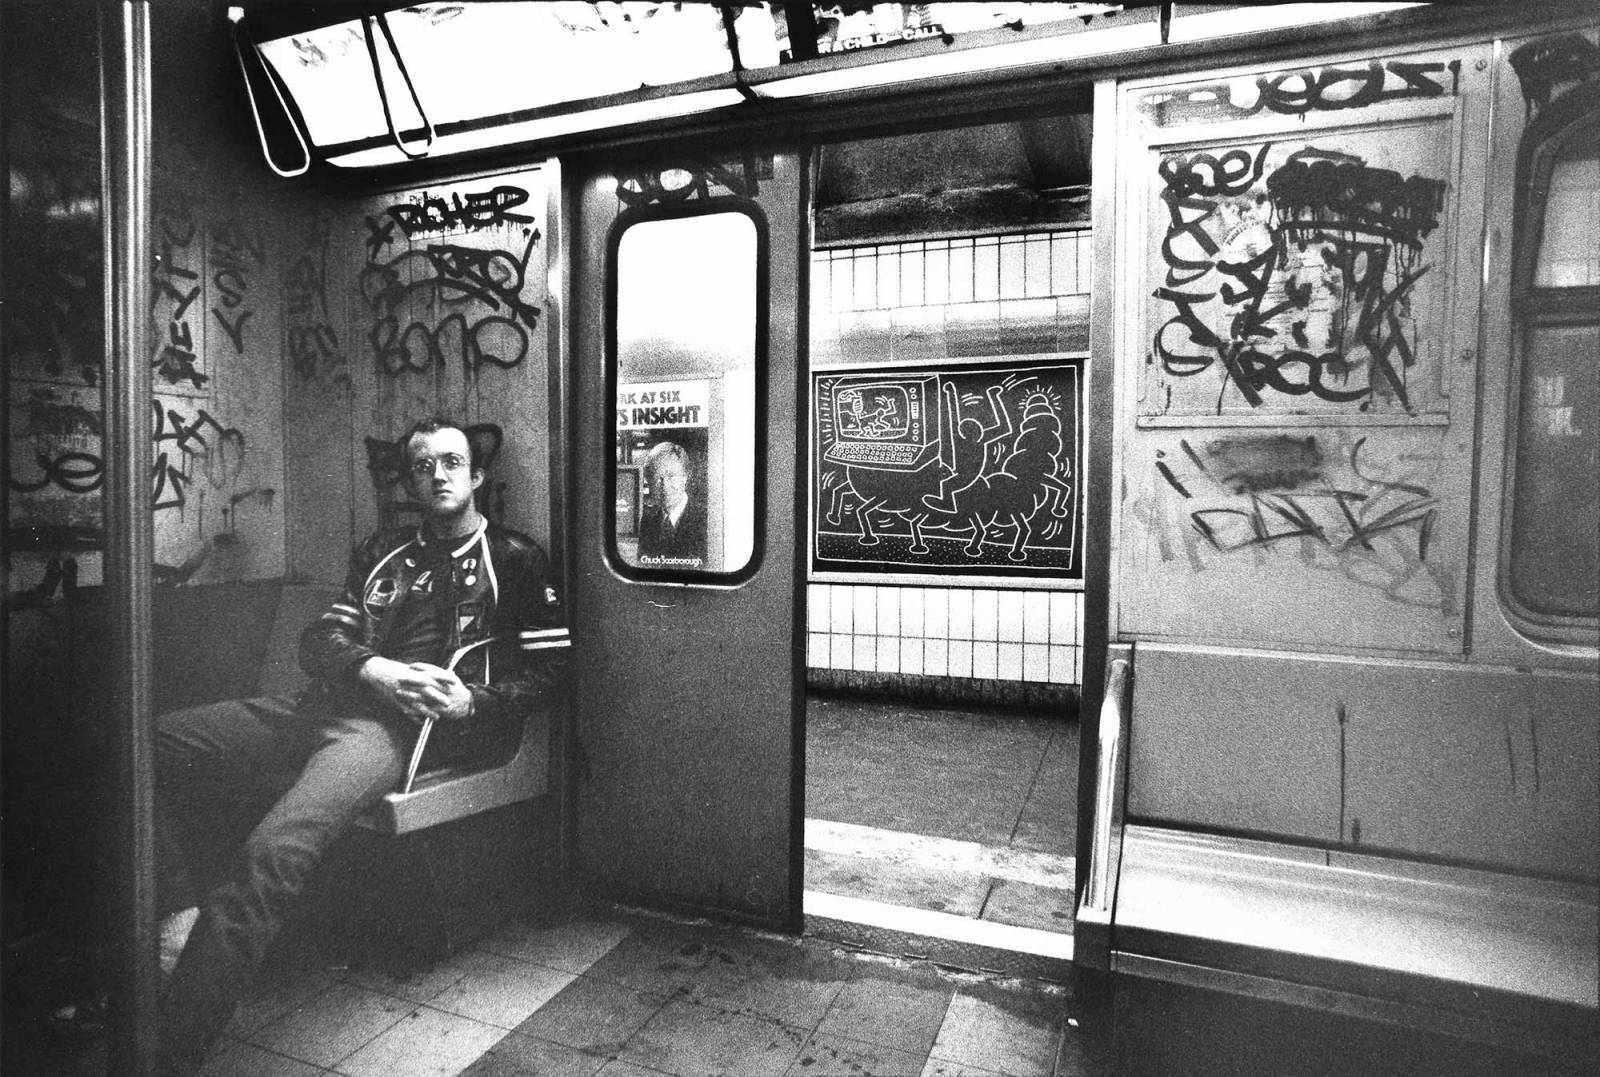 Keith Haring w metrze, Nowy Jork około 1983 r. (Fot. © Muna Tseng Dance Projects, Inc. Art © Keith Haring Foundation)